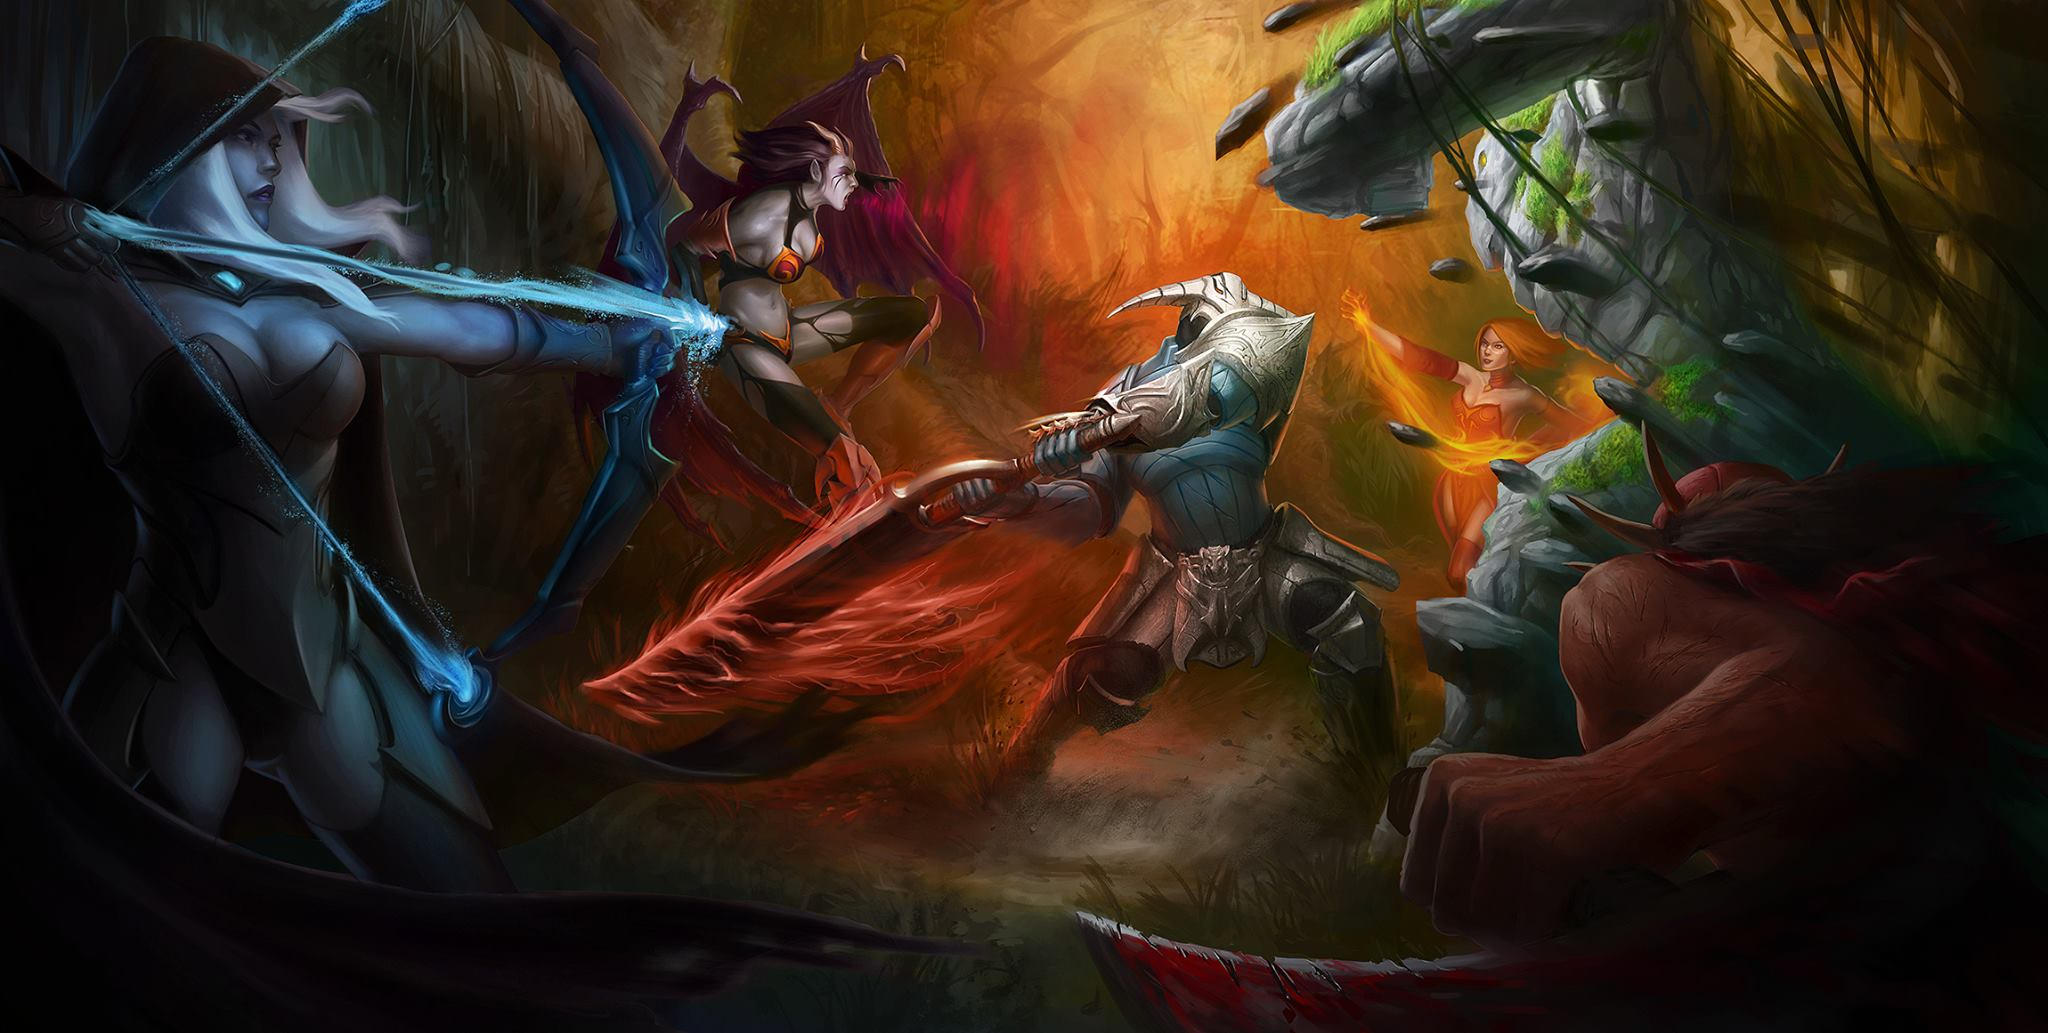 Collection of Dota  Hd Wallpapers on HDWallpapers 2048x1033